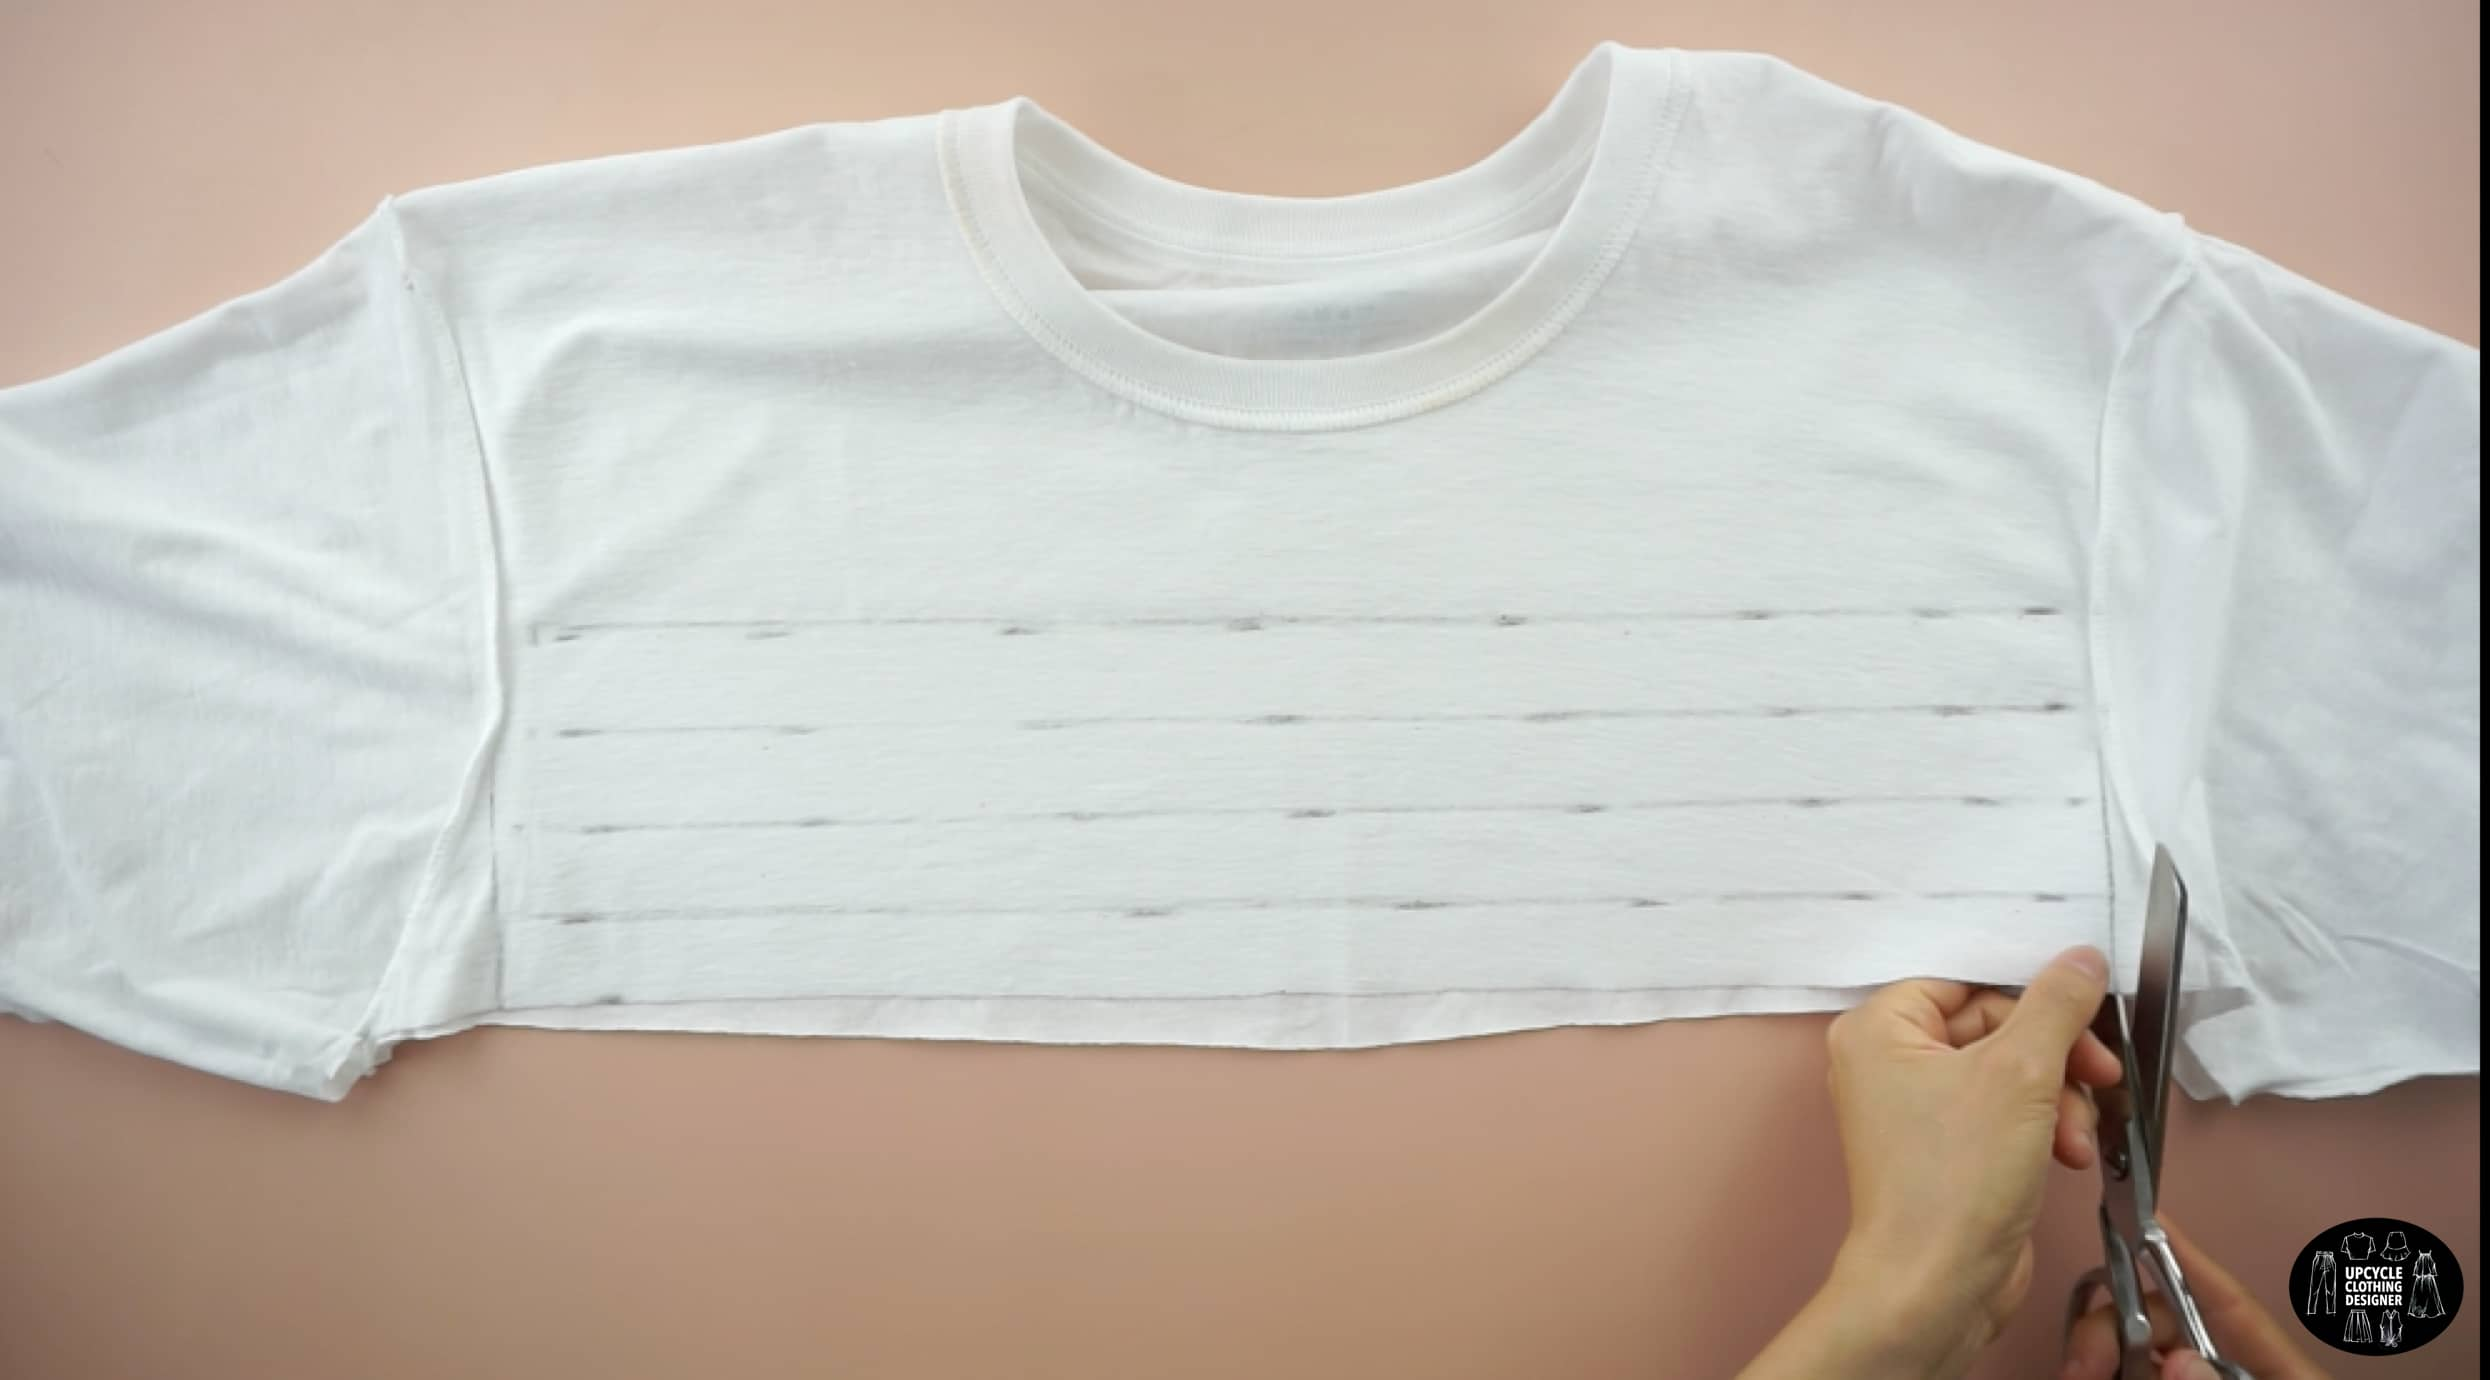 Cut four straps on the front of the original tee to make drawstrings